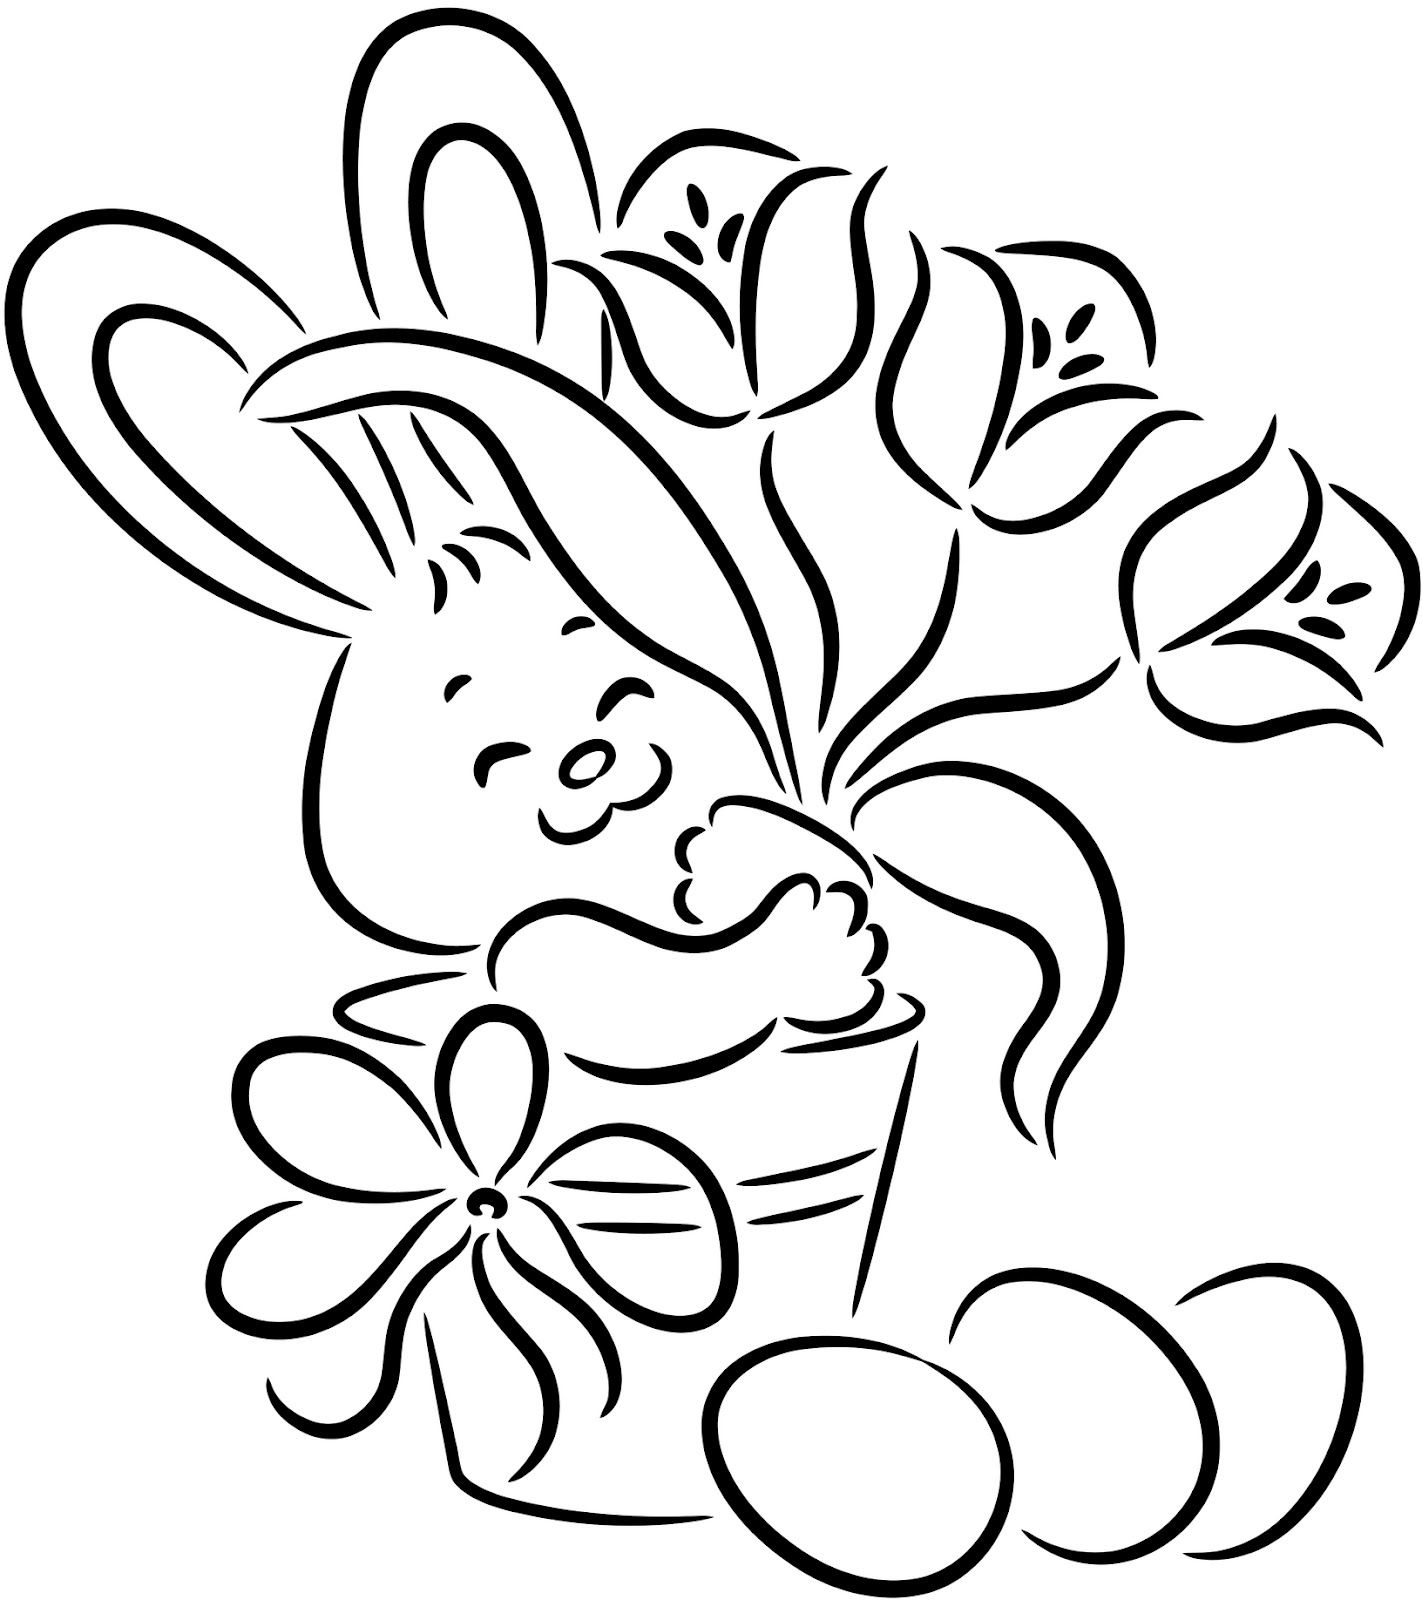 - Disney Bunnies Coloring Pages (With Images) Bunny Coloring Pages